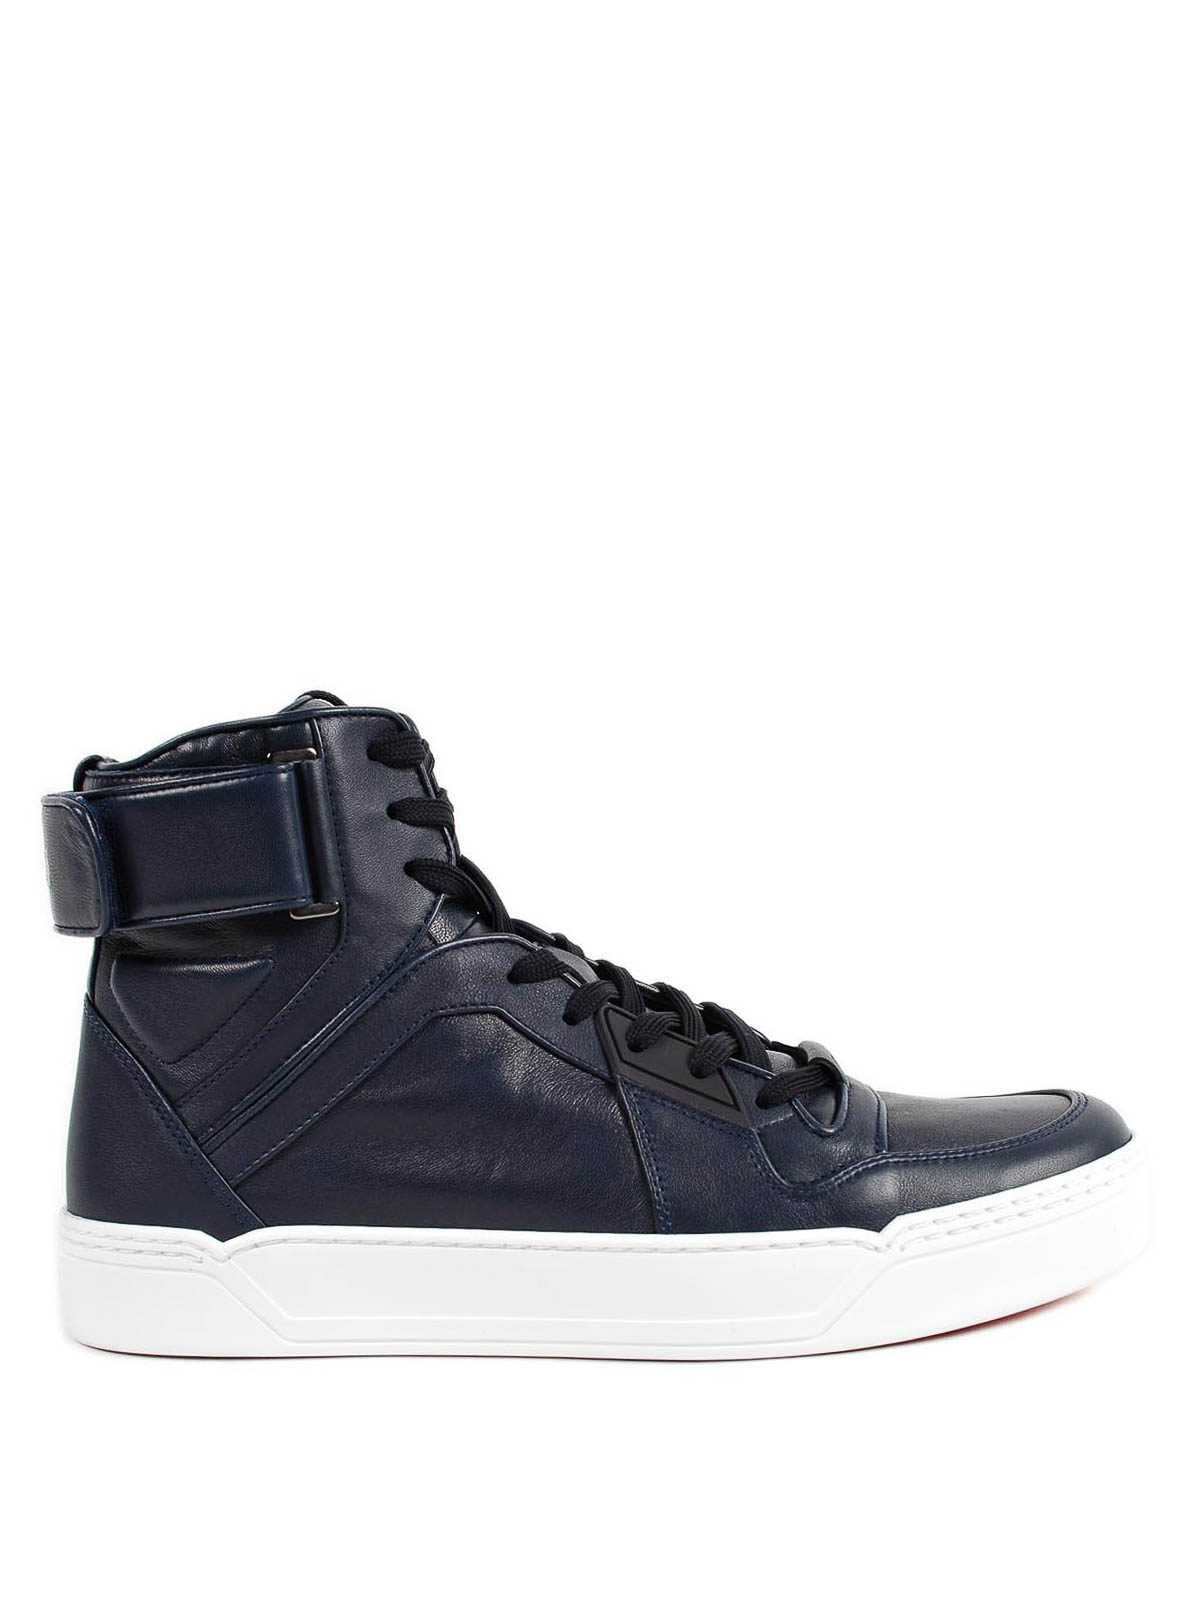 Gucci Shoes High Top For Men